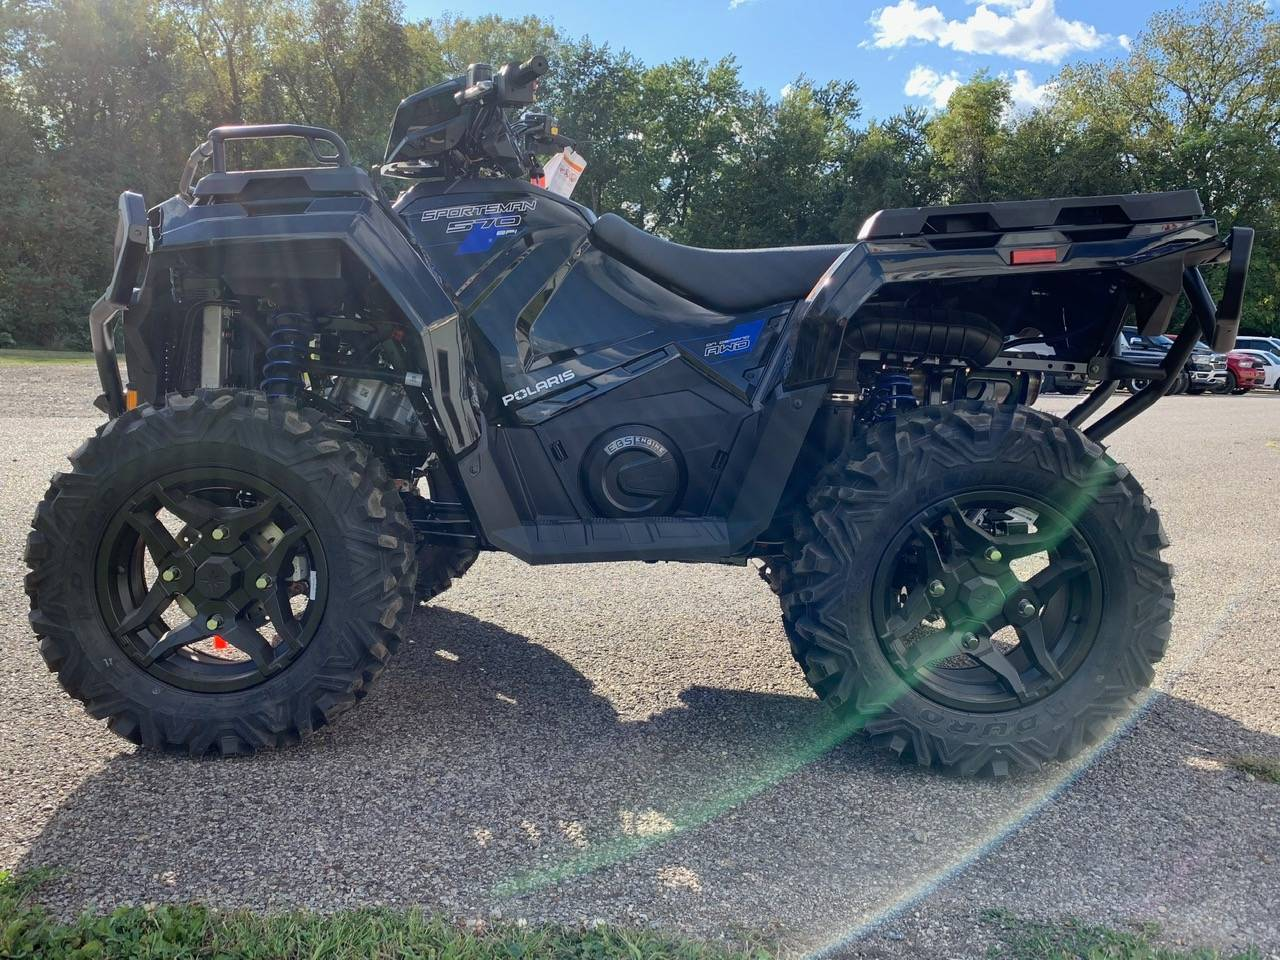 2021 Polaris Sportsman 570 Trail in Brilliant, Ohio - Photo 6